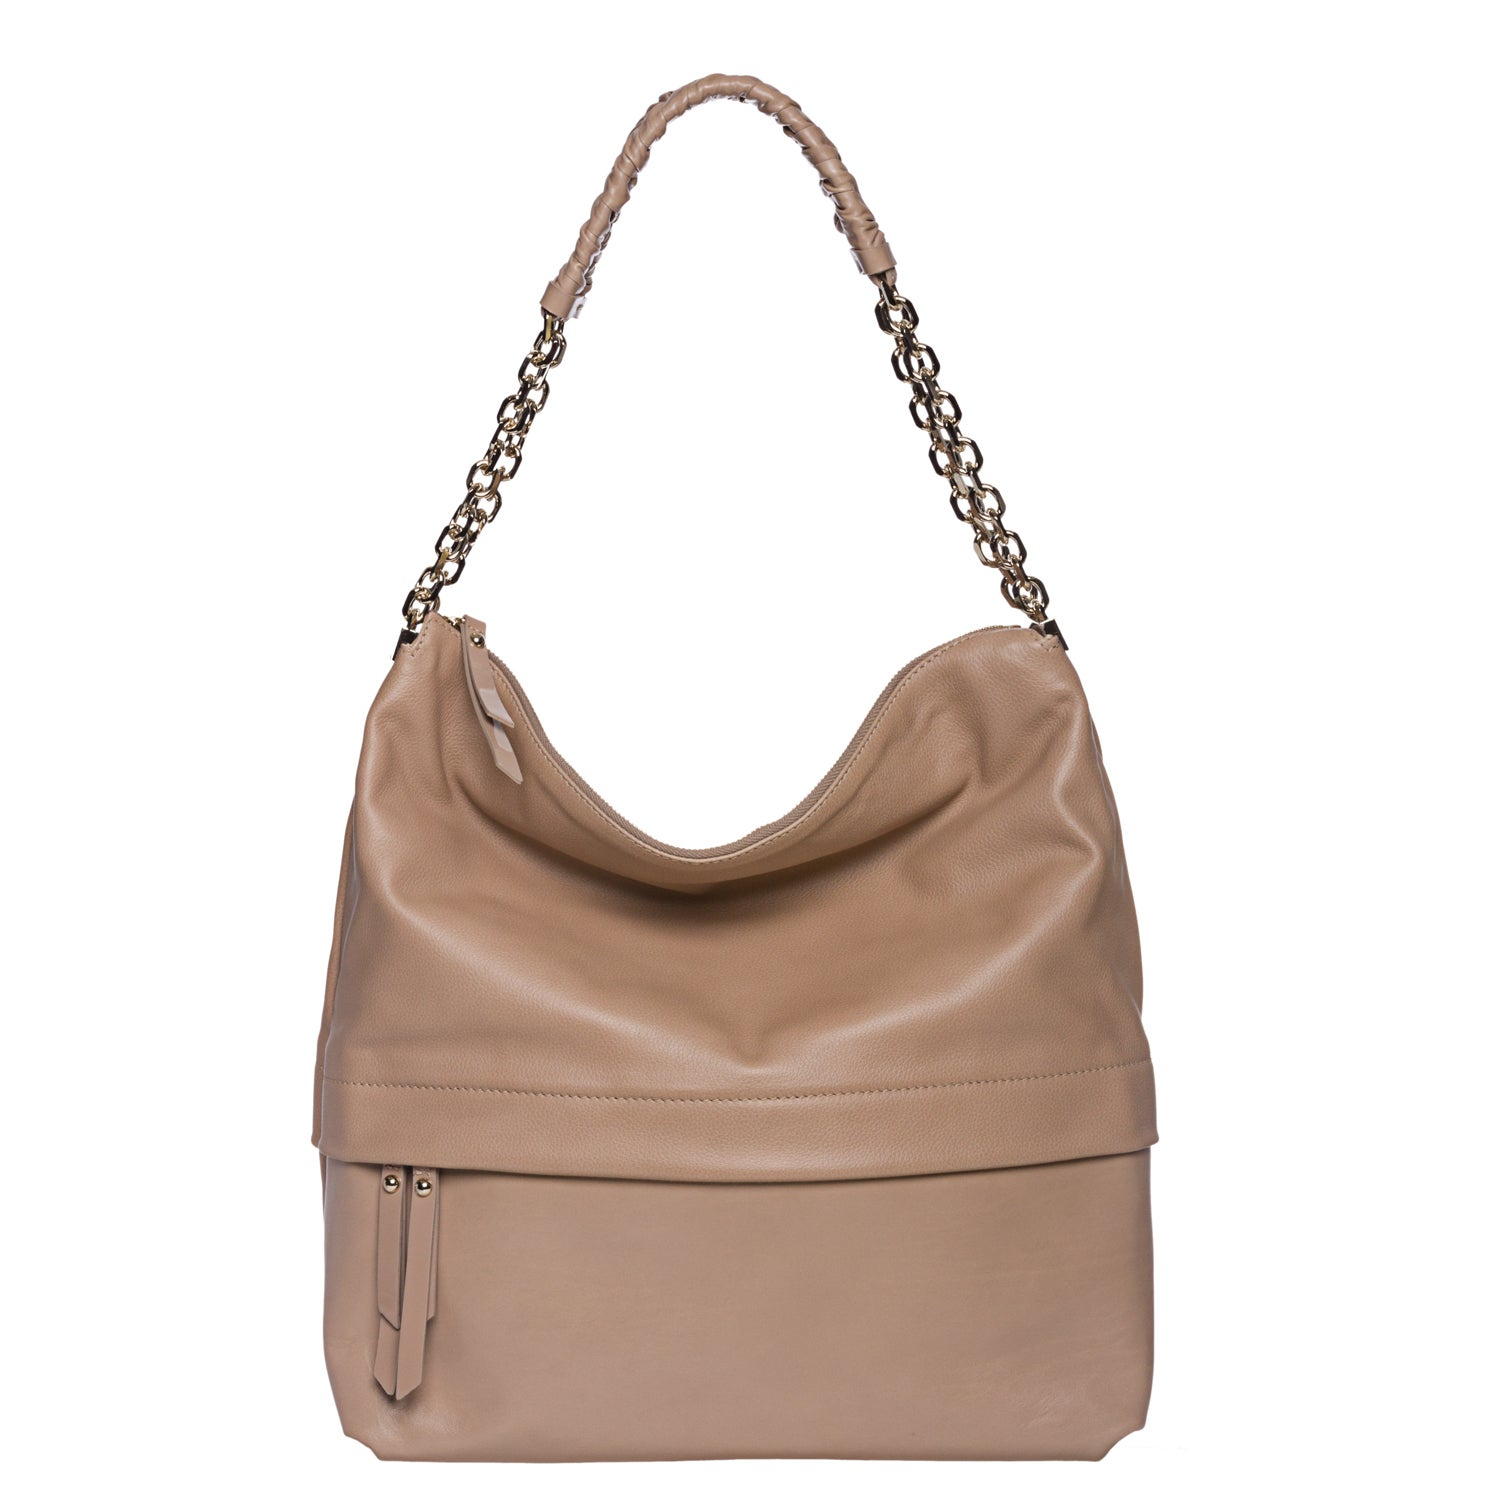 Christian Louboutin 'Marianne' Beige Leather Hobo Bag